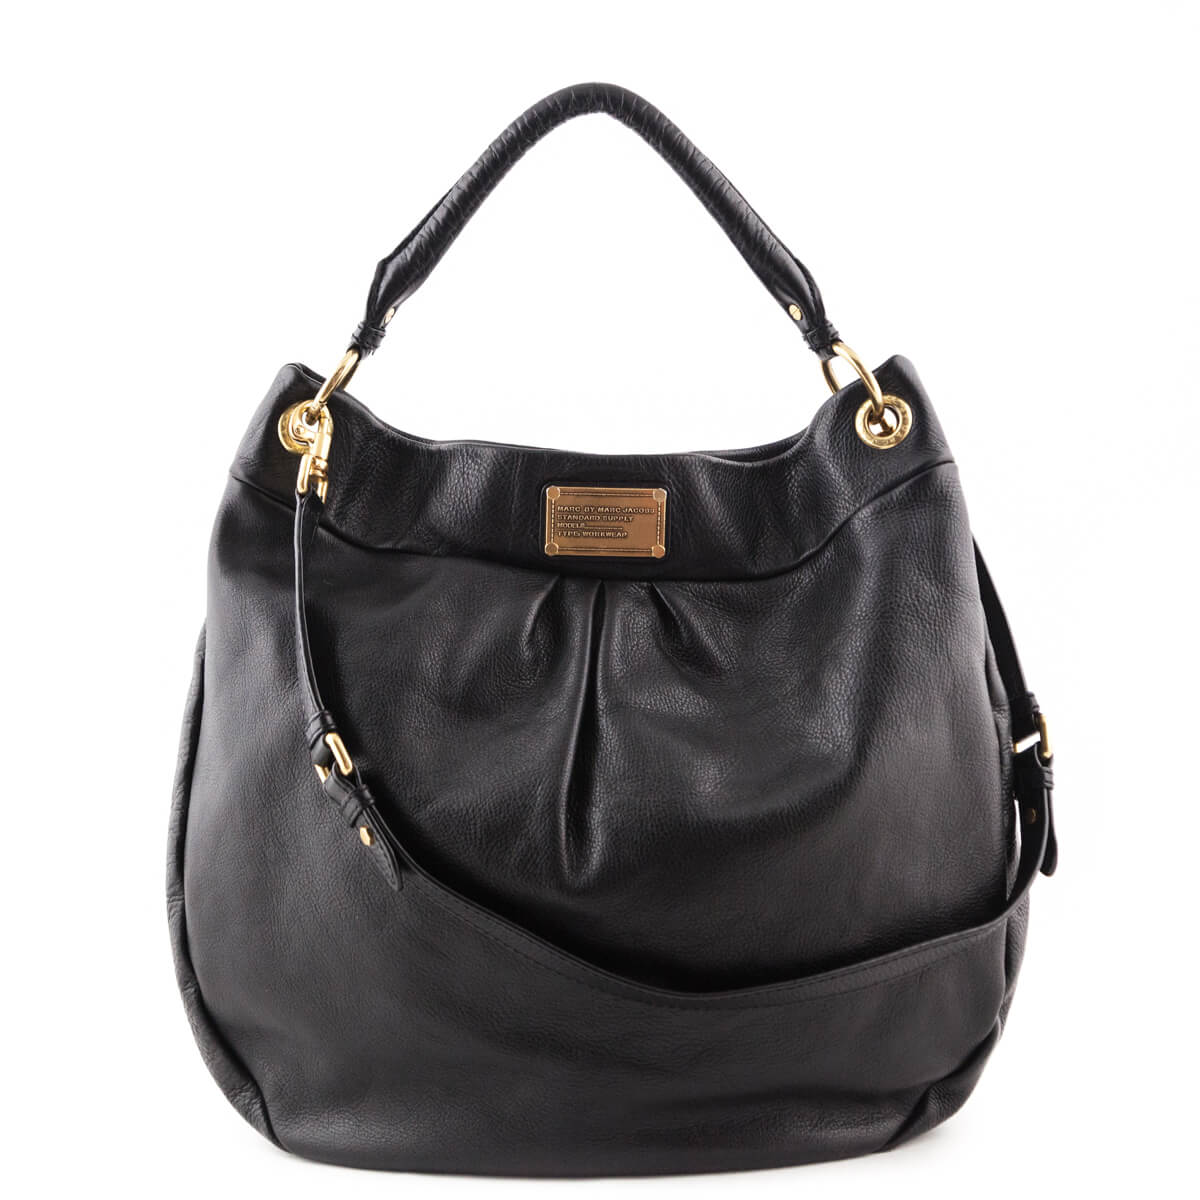 6f5d729adee4 Marc by Marc Jacobs Black Classic Q Hillier Hobo - LOVE that BAG - Preowned  Authentic ...